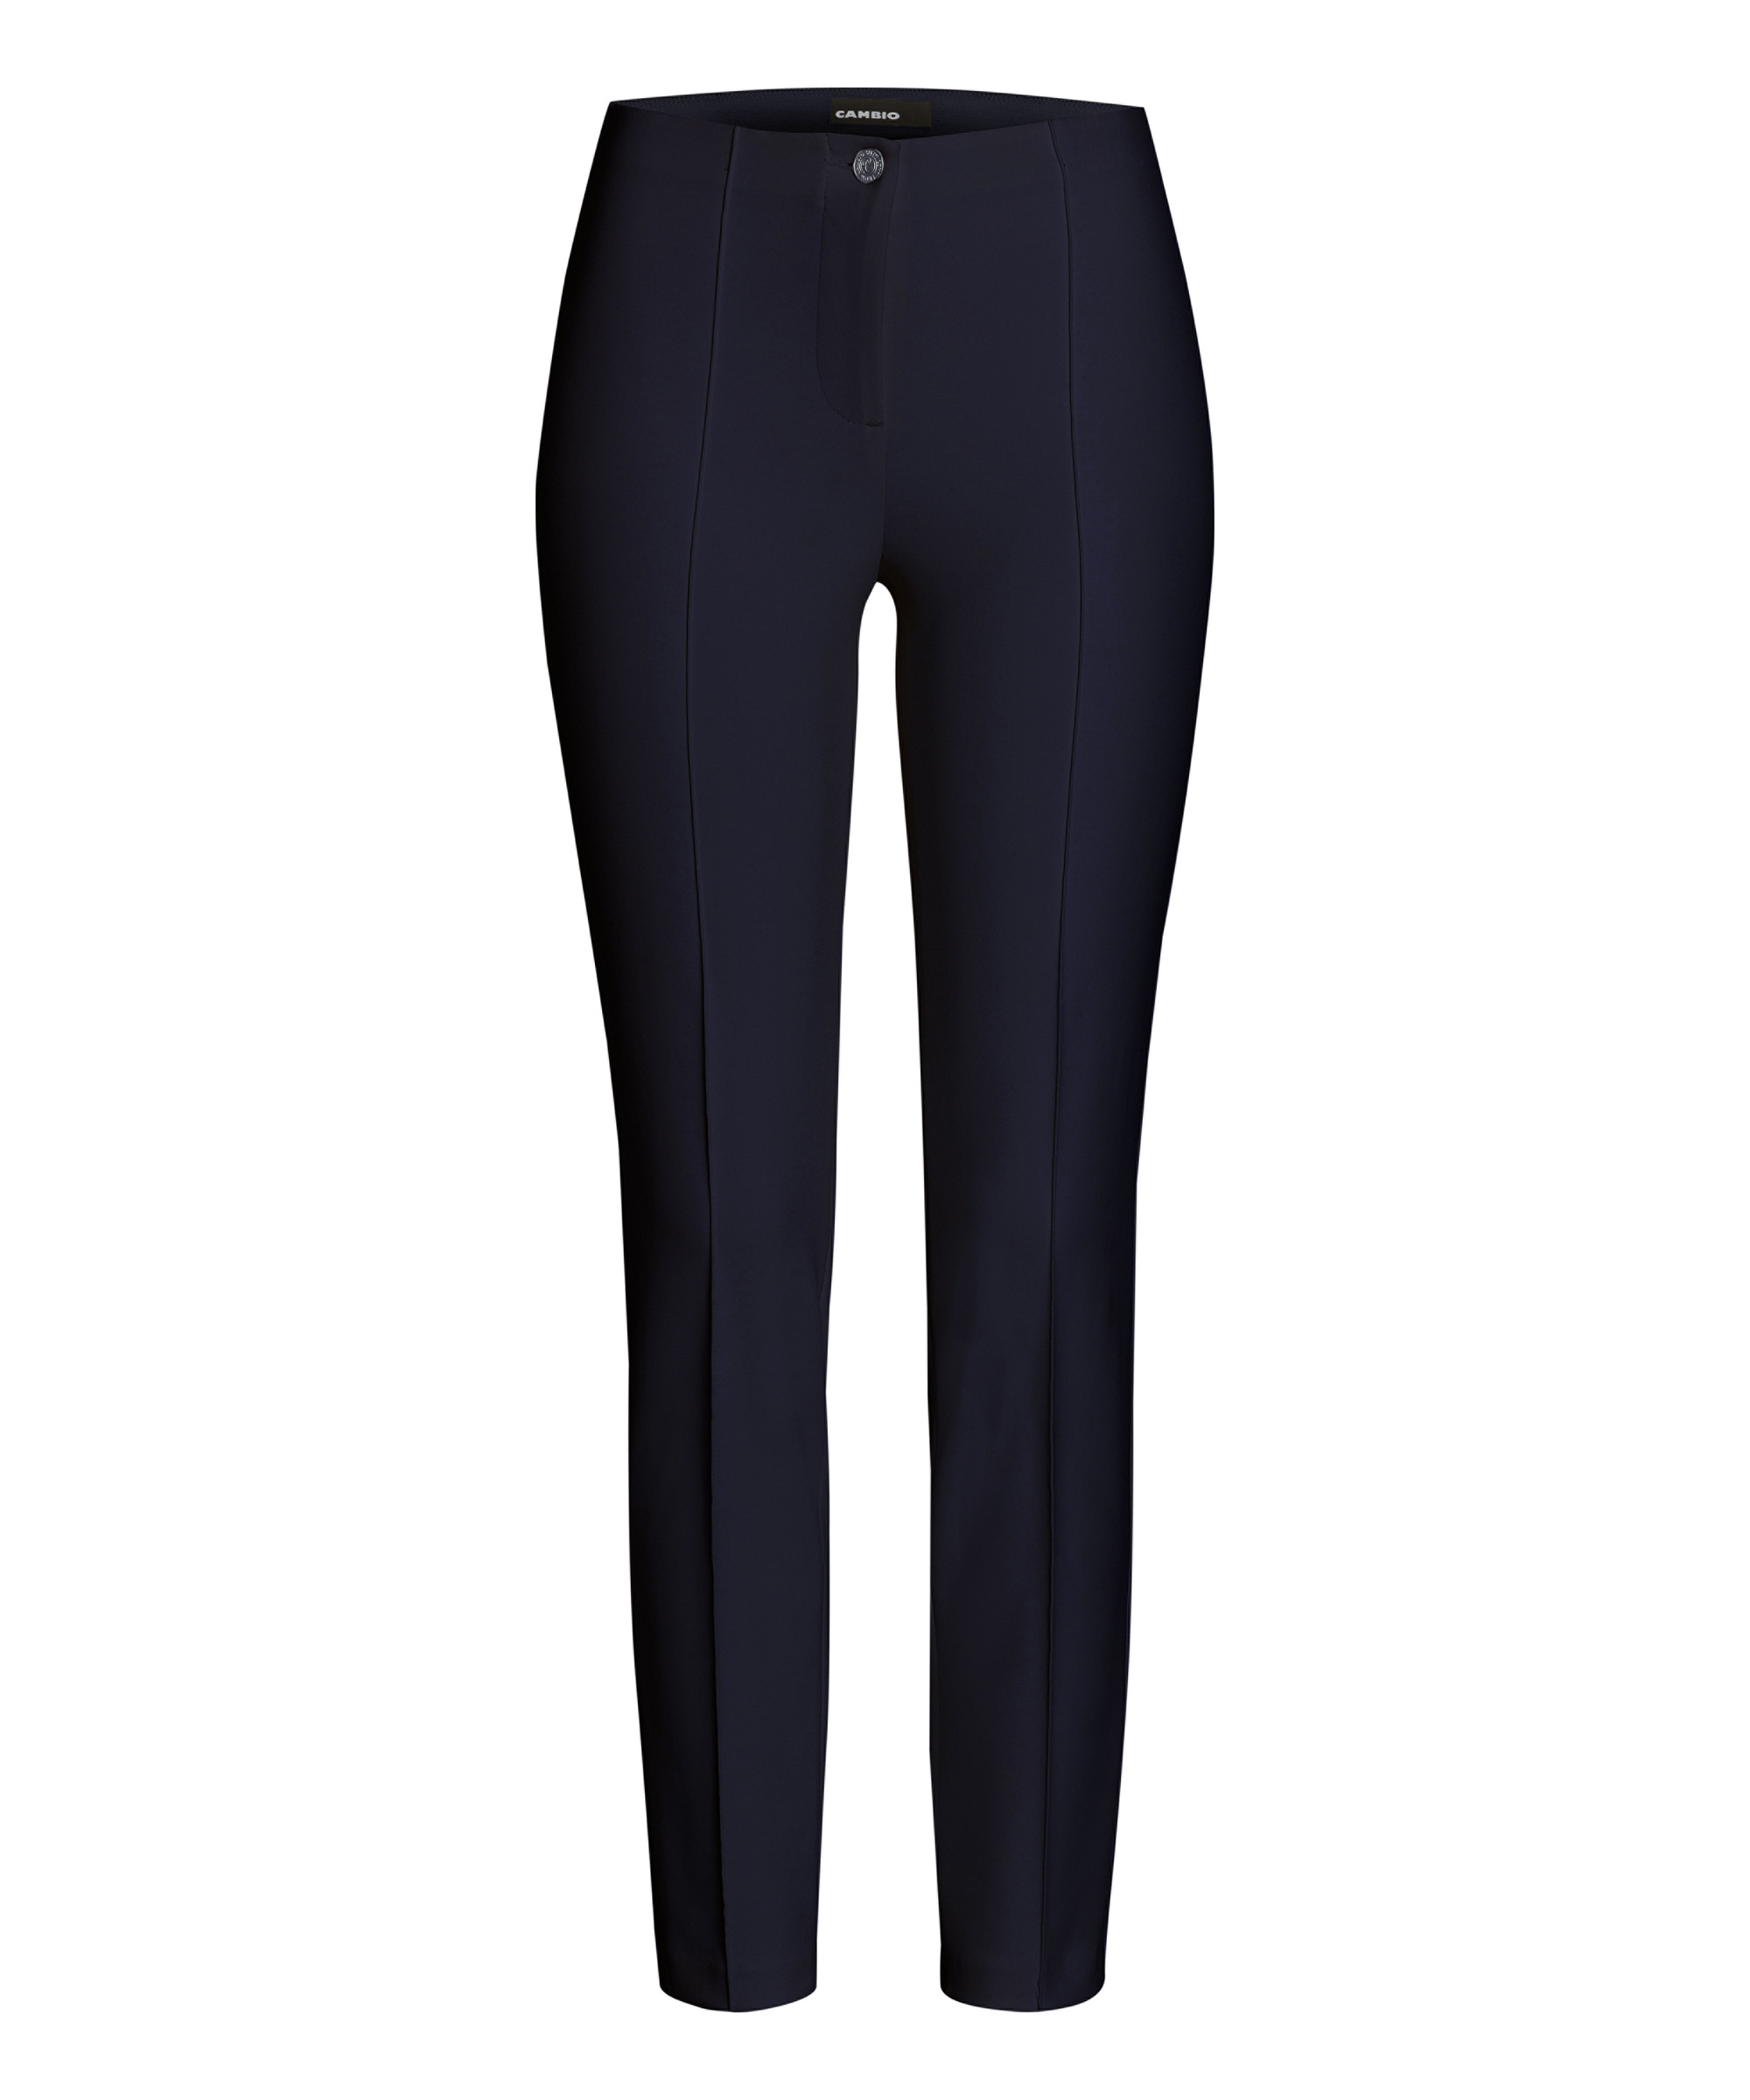 Cambio broek Ros microstructure superstretch moonlight blue